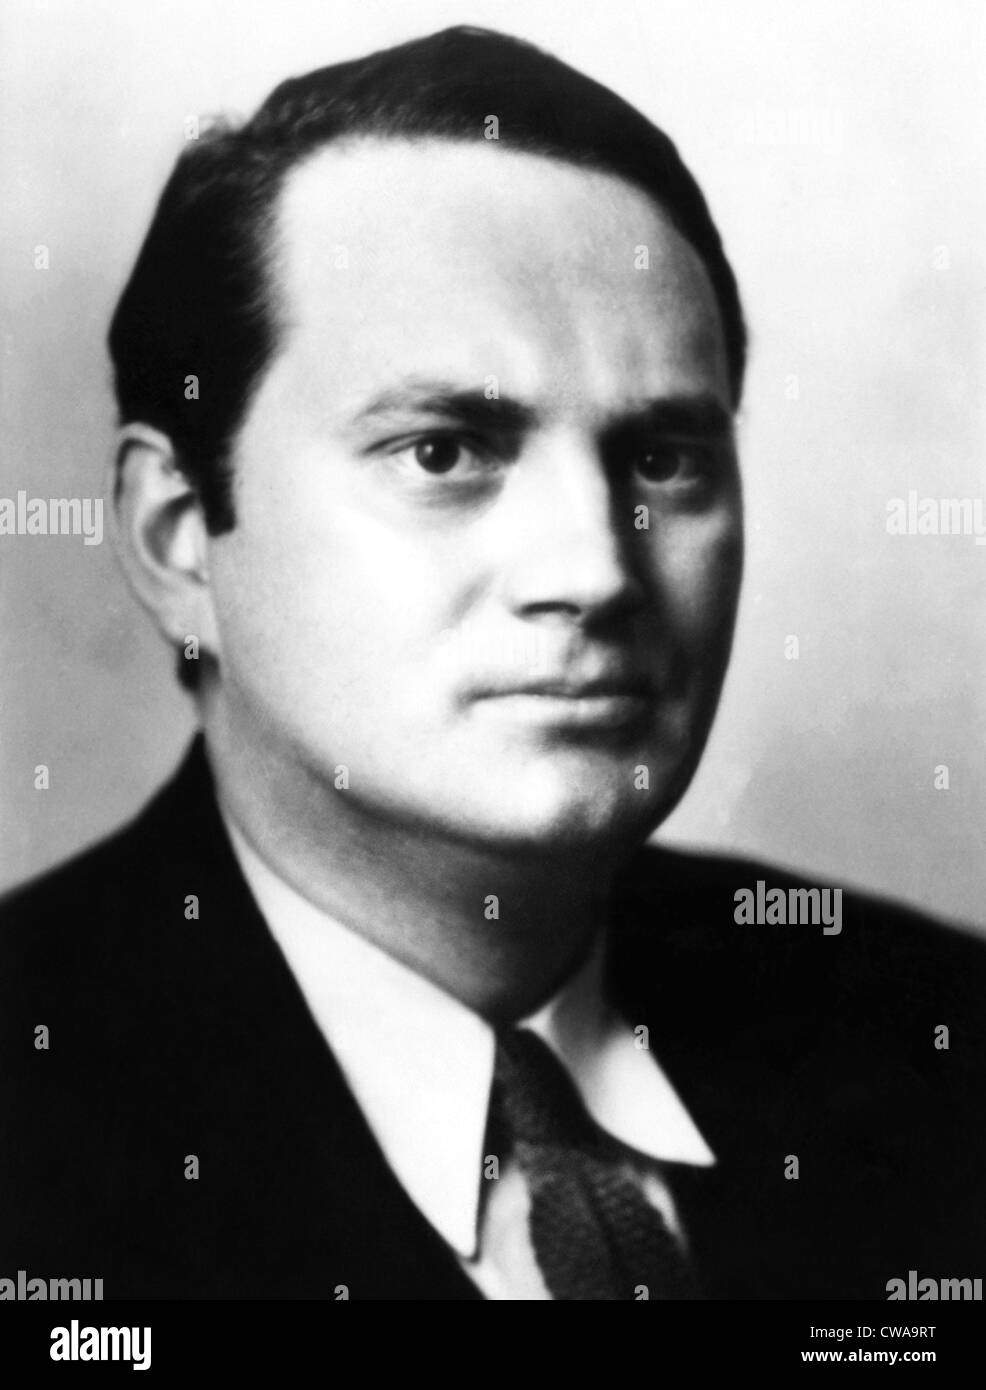 Thomas Wolfe (1900-1938), American author, circa 1930s. Courtesy: CSU Archives/Everett Collection. - Stock Image